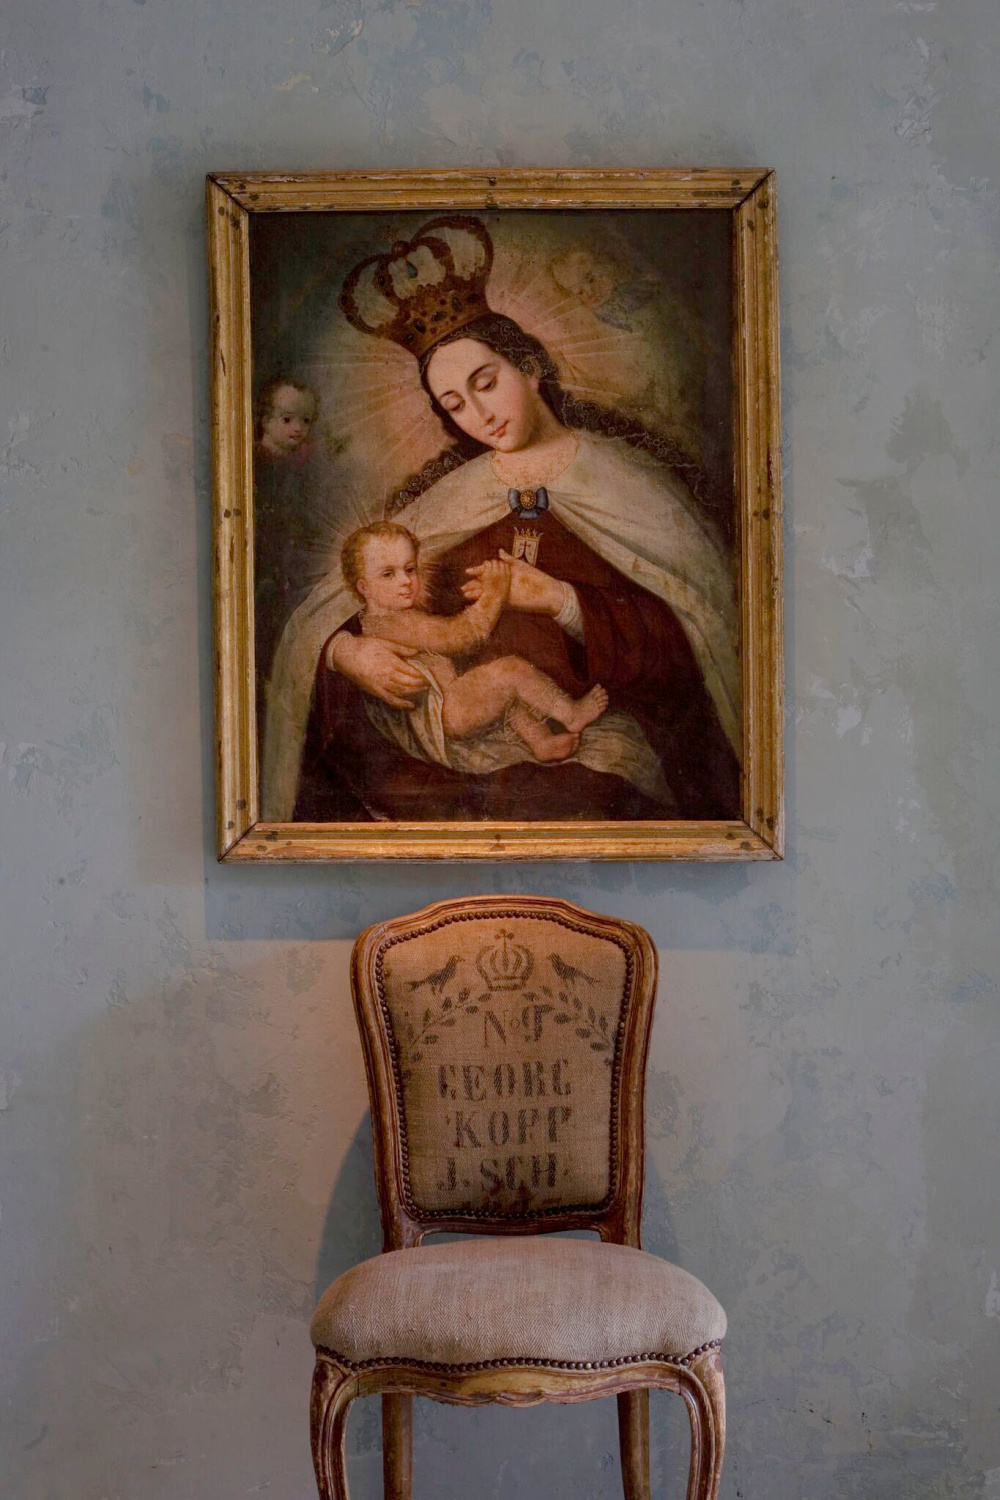 Beautiful antique religious art from France with elegant chair upholstered in gransack - Chateau Domingue.